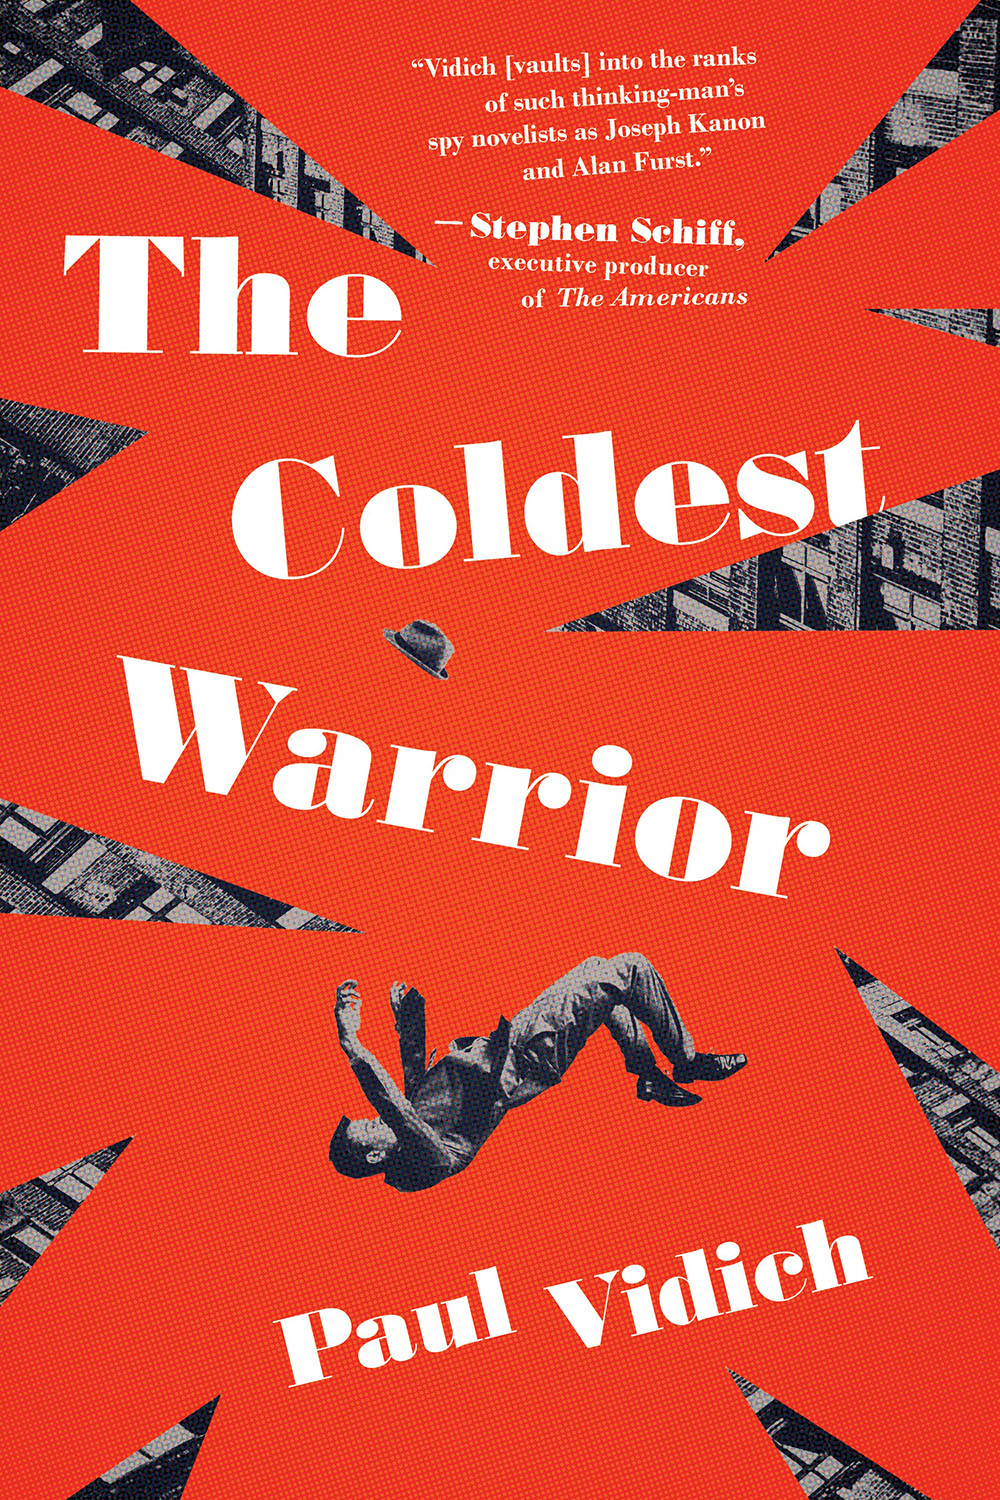 The Coldest Warrior - Vidich